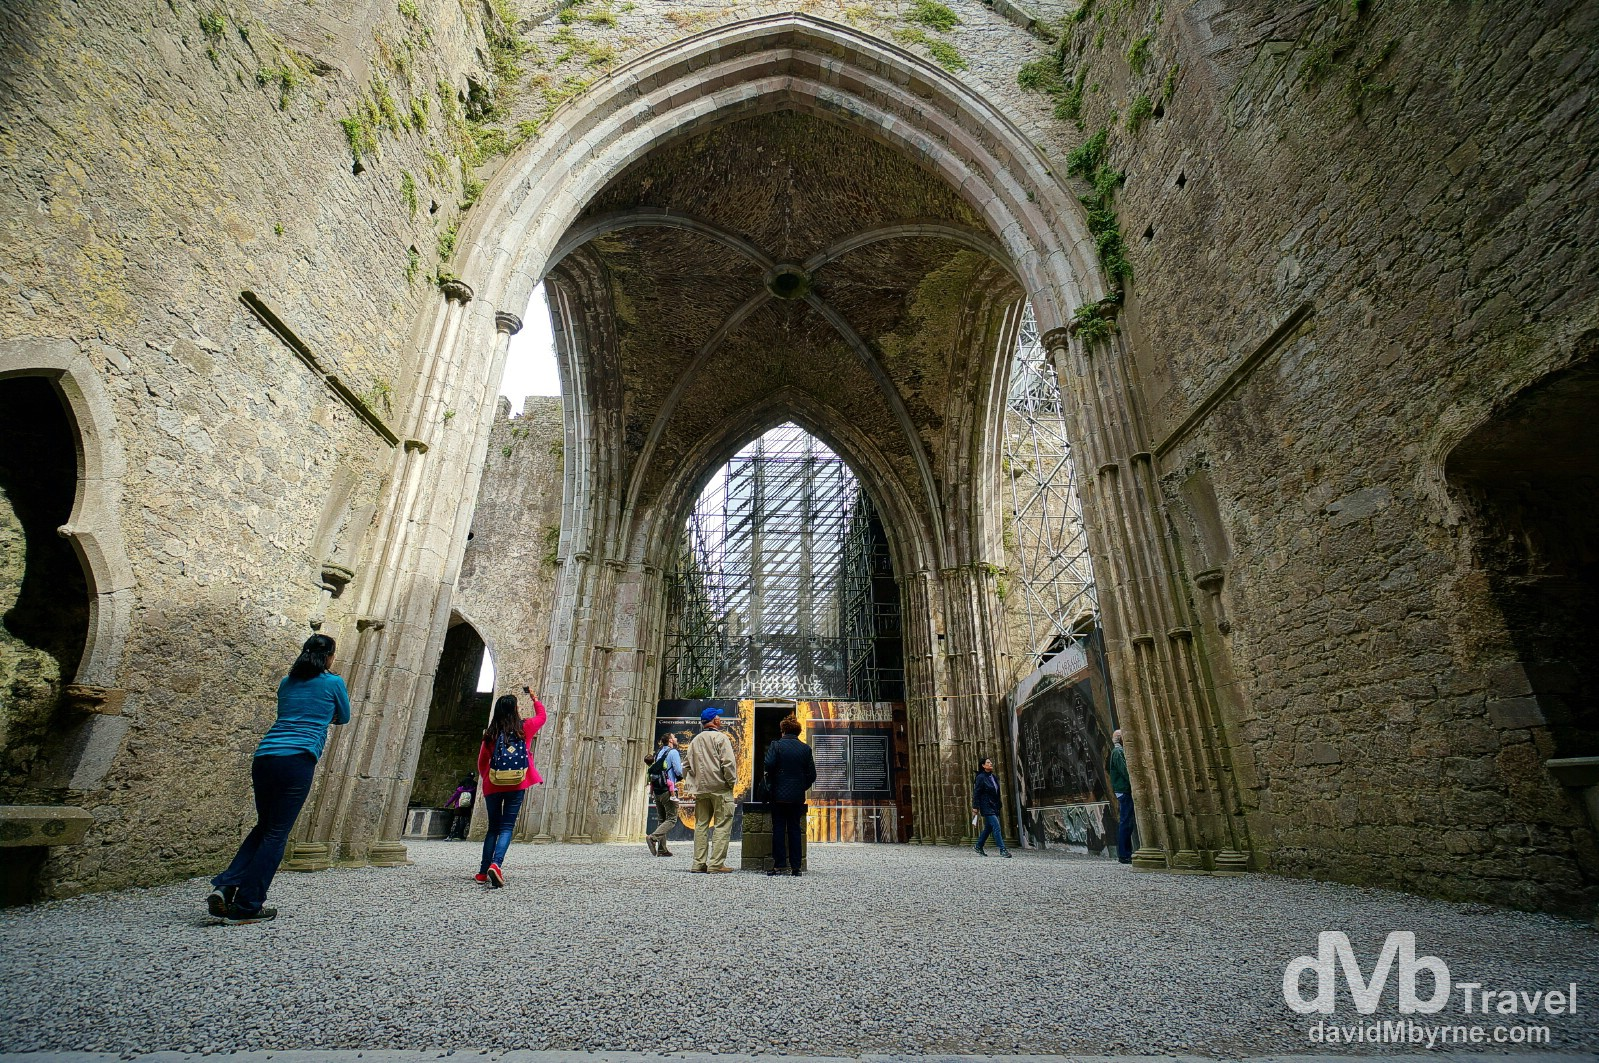 Inside the 13th century Gothic Cathedral of the Rock of Cashel, Cashel, Co. Tipperary, Ireland. August 30, 2014.